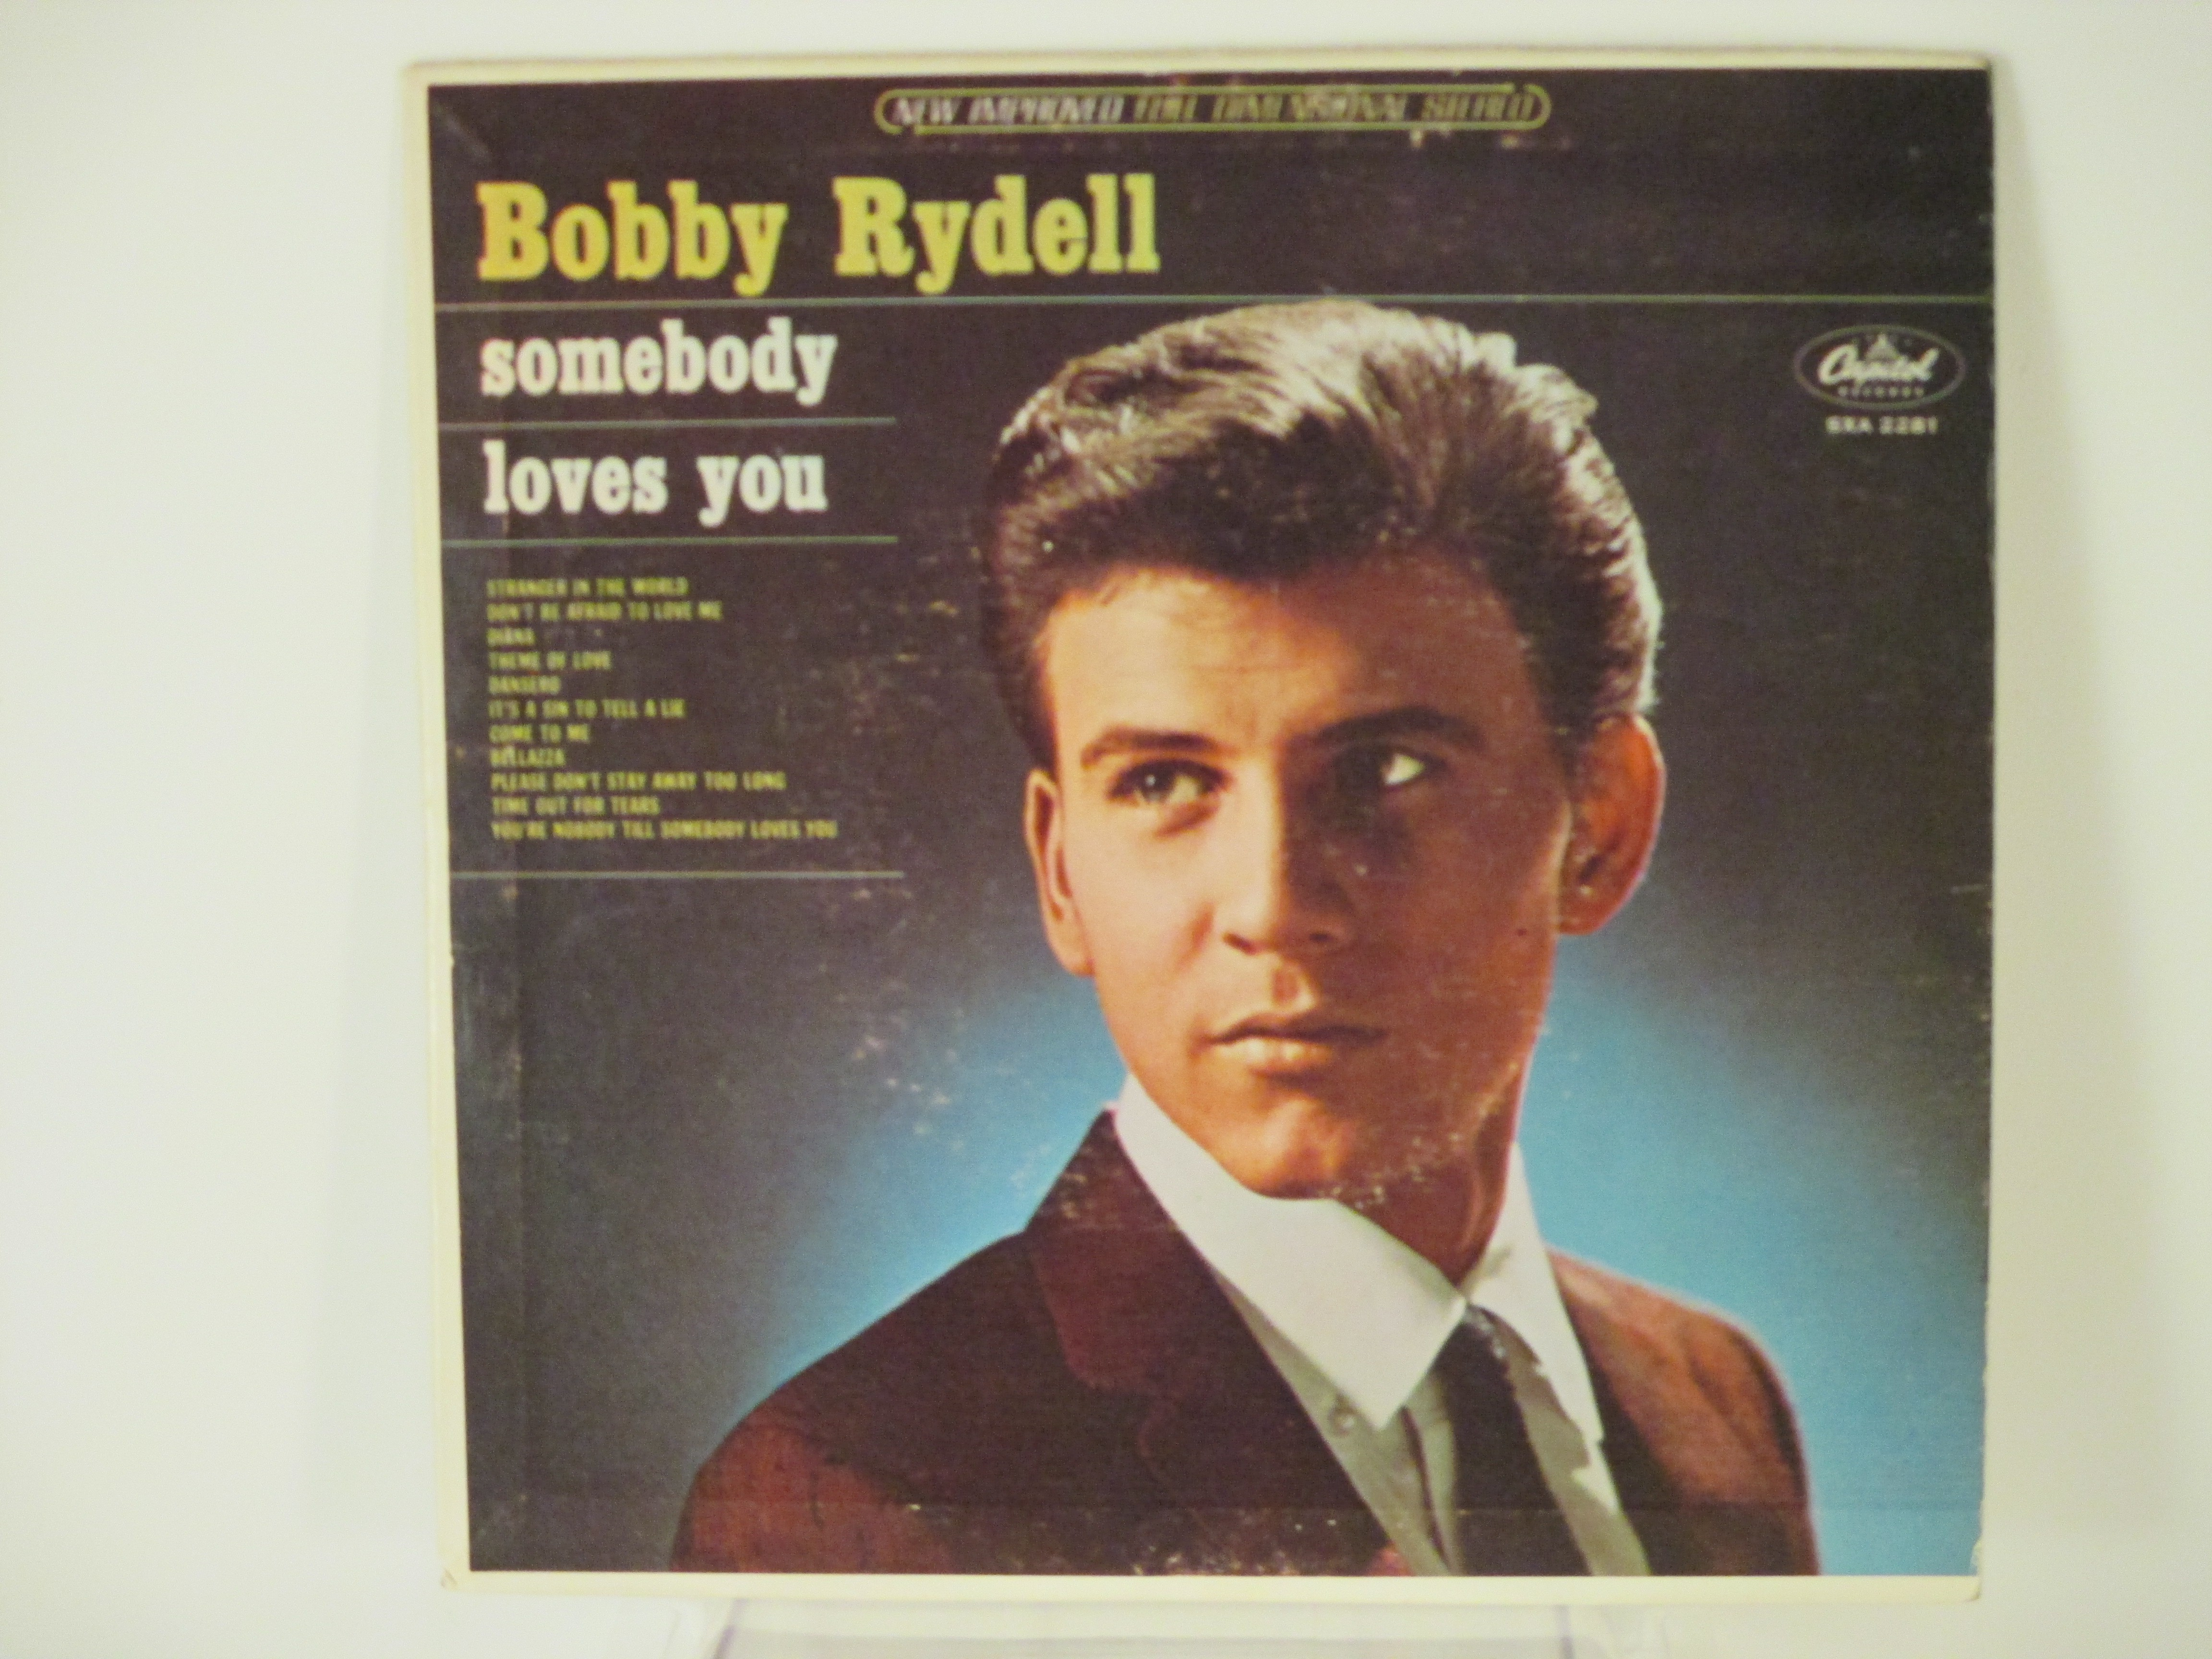 "BOBBY RYDELL : (EP) ""Somebody loves you"" : Stranger in the world / Don't be afraid to love me / Diana / Theme of love / Dansero / It's a sin to tell a lie / Come to me / Bellazza / Please don't stay away too long / Time out for tears / You're nobody till"